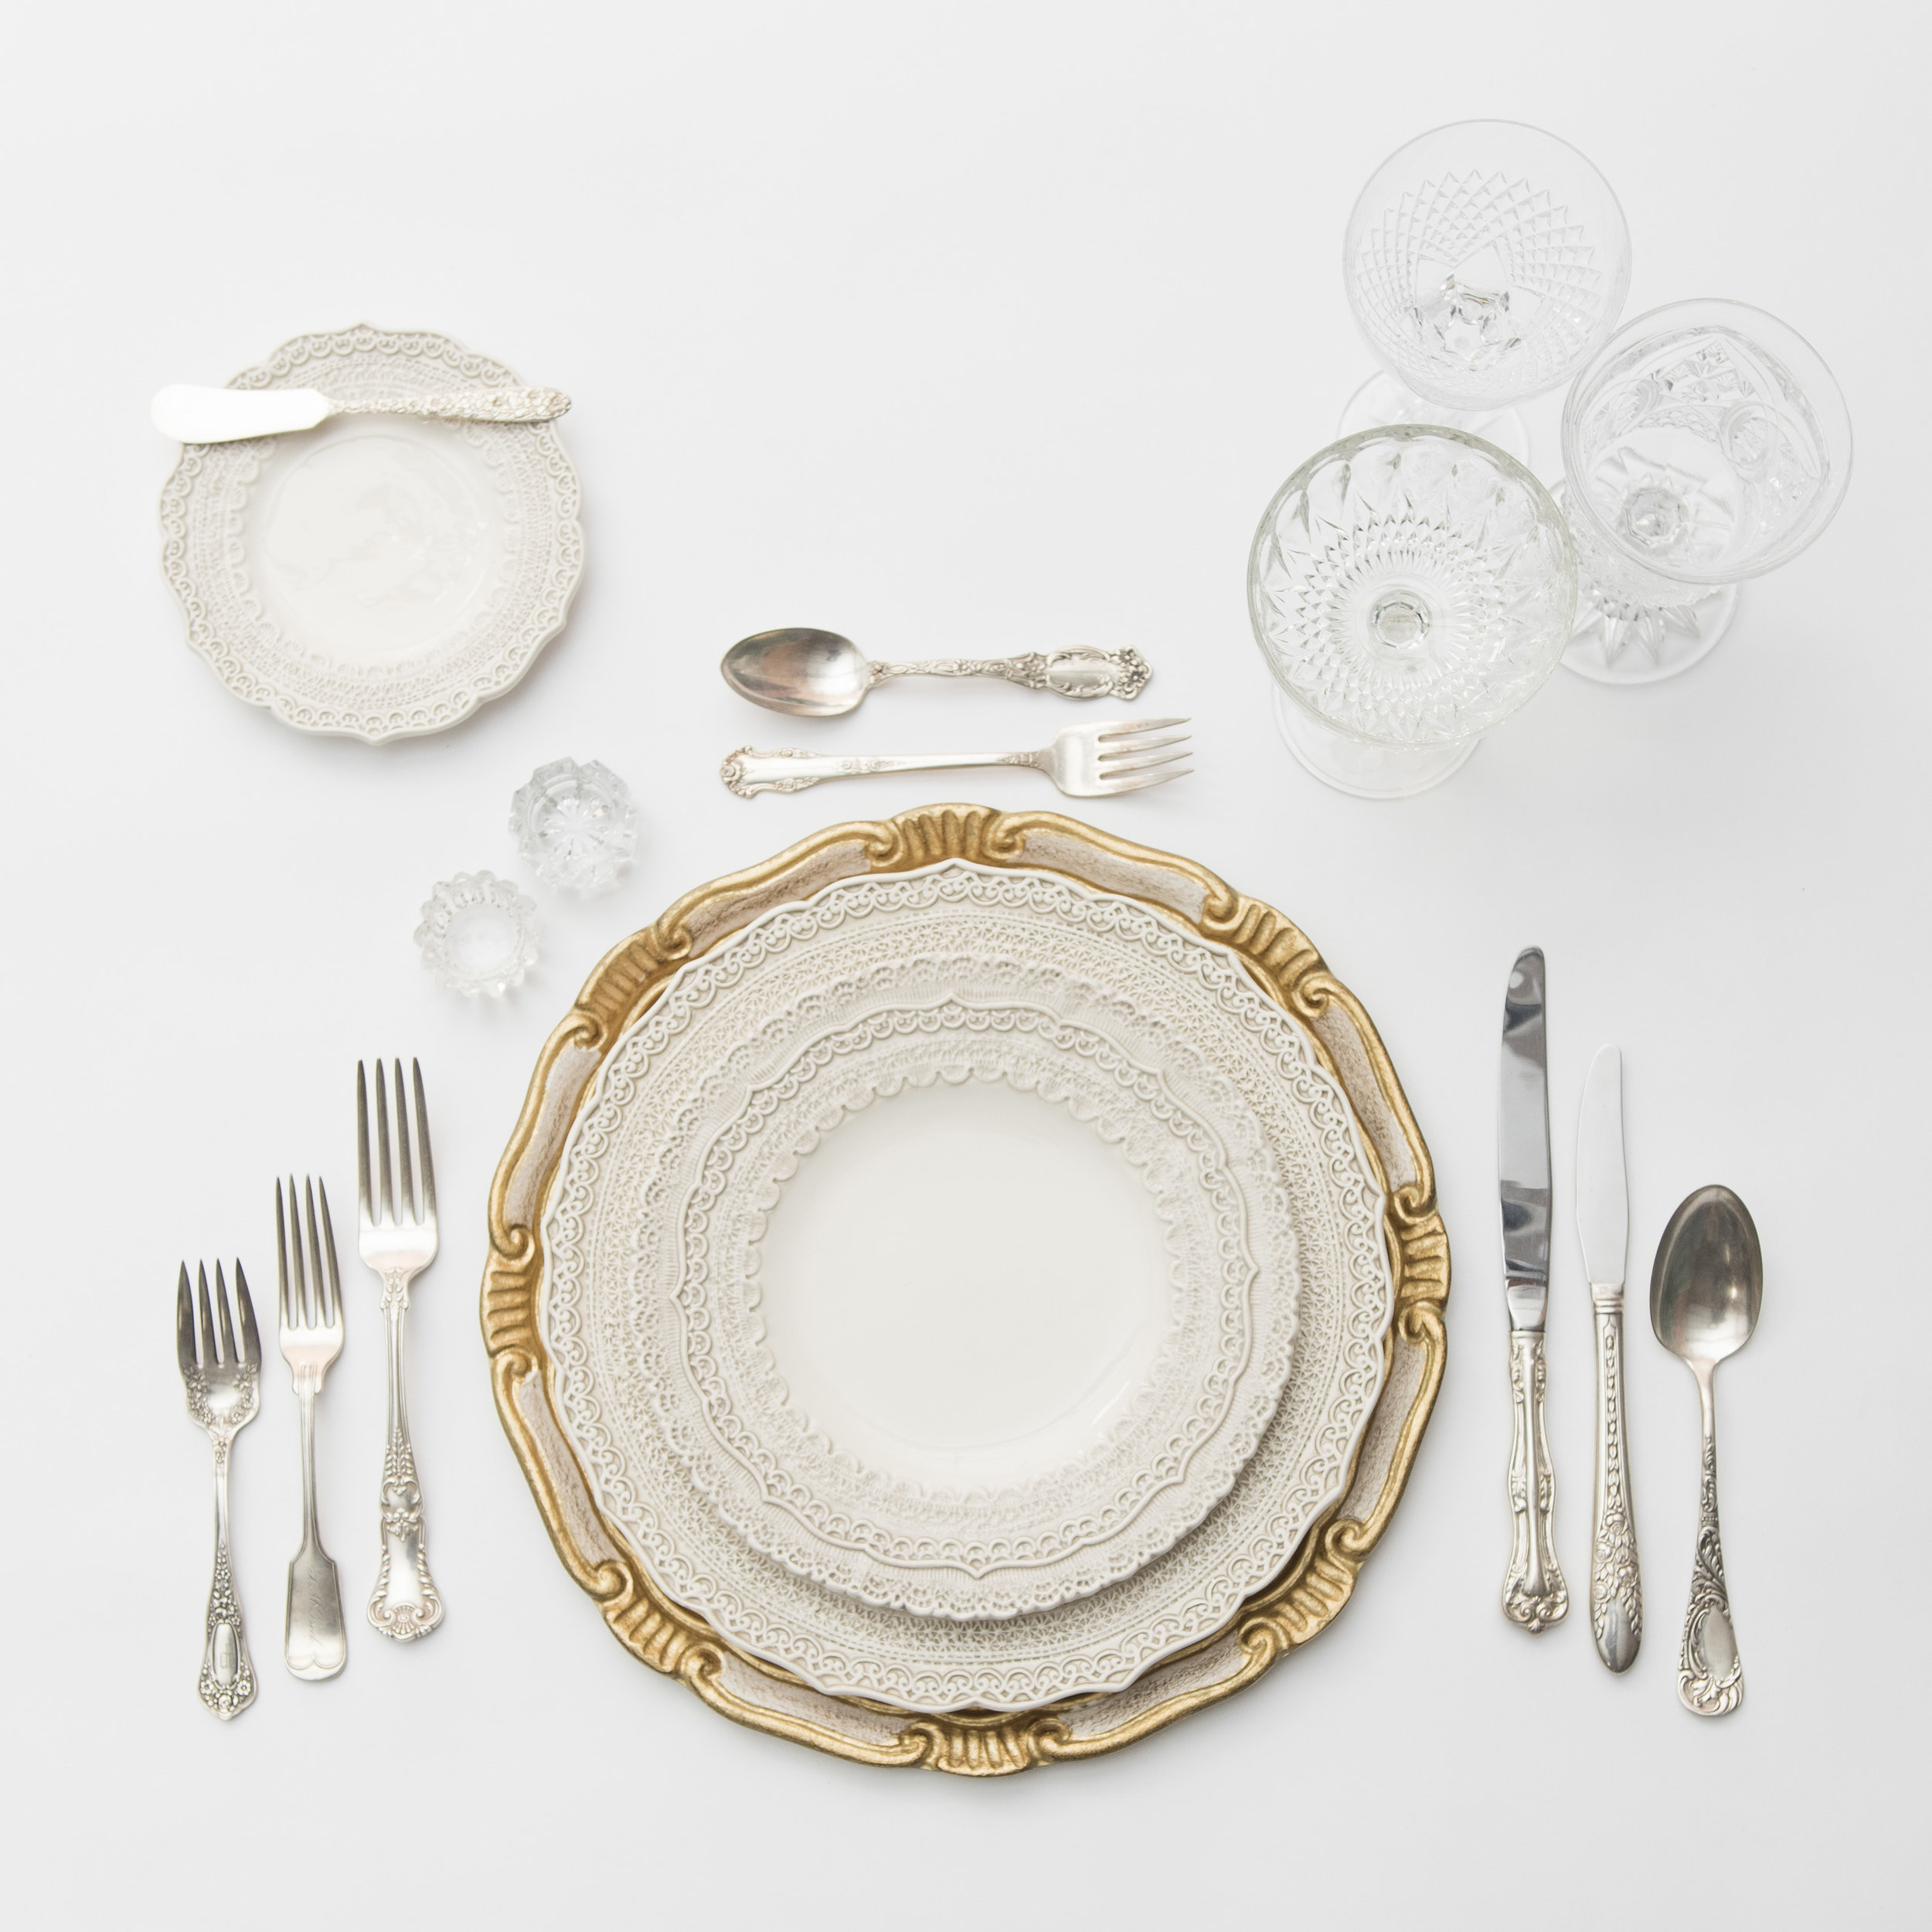 RENT: Florentine Chargers in White/Gold + Lace Dinnerware in White + Antique Silver Flatware + Vintage Cut Crystal Goblets + Early American Pressed Glass Goblets + Vintage Champagne Coupes + Antique Crystal Salt Cellars  SHOP:Florentine Chargers in White/Gold